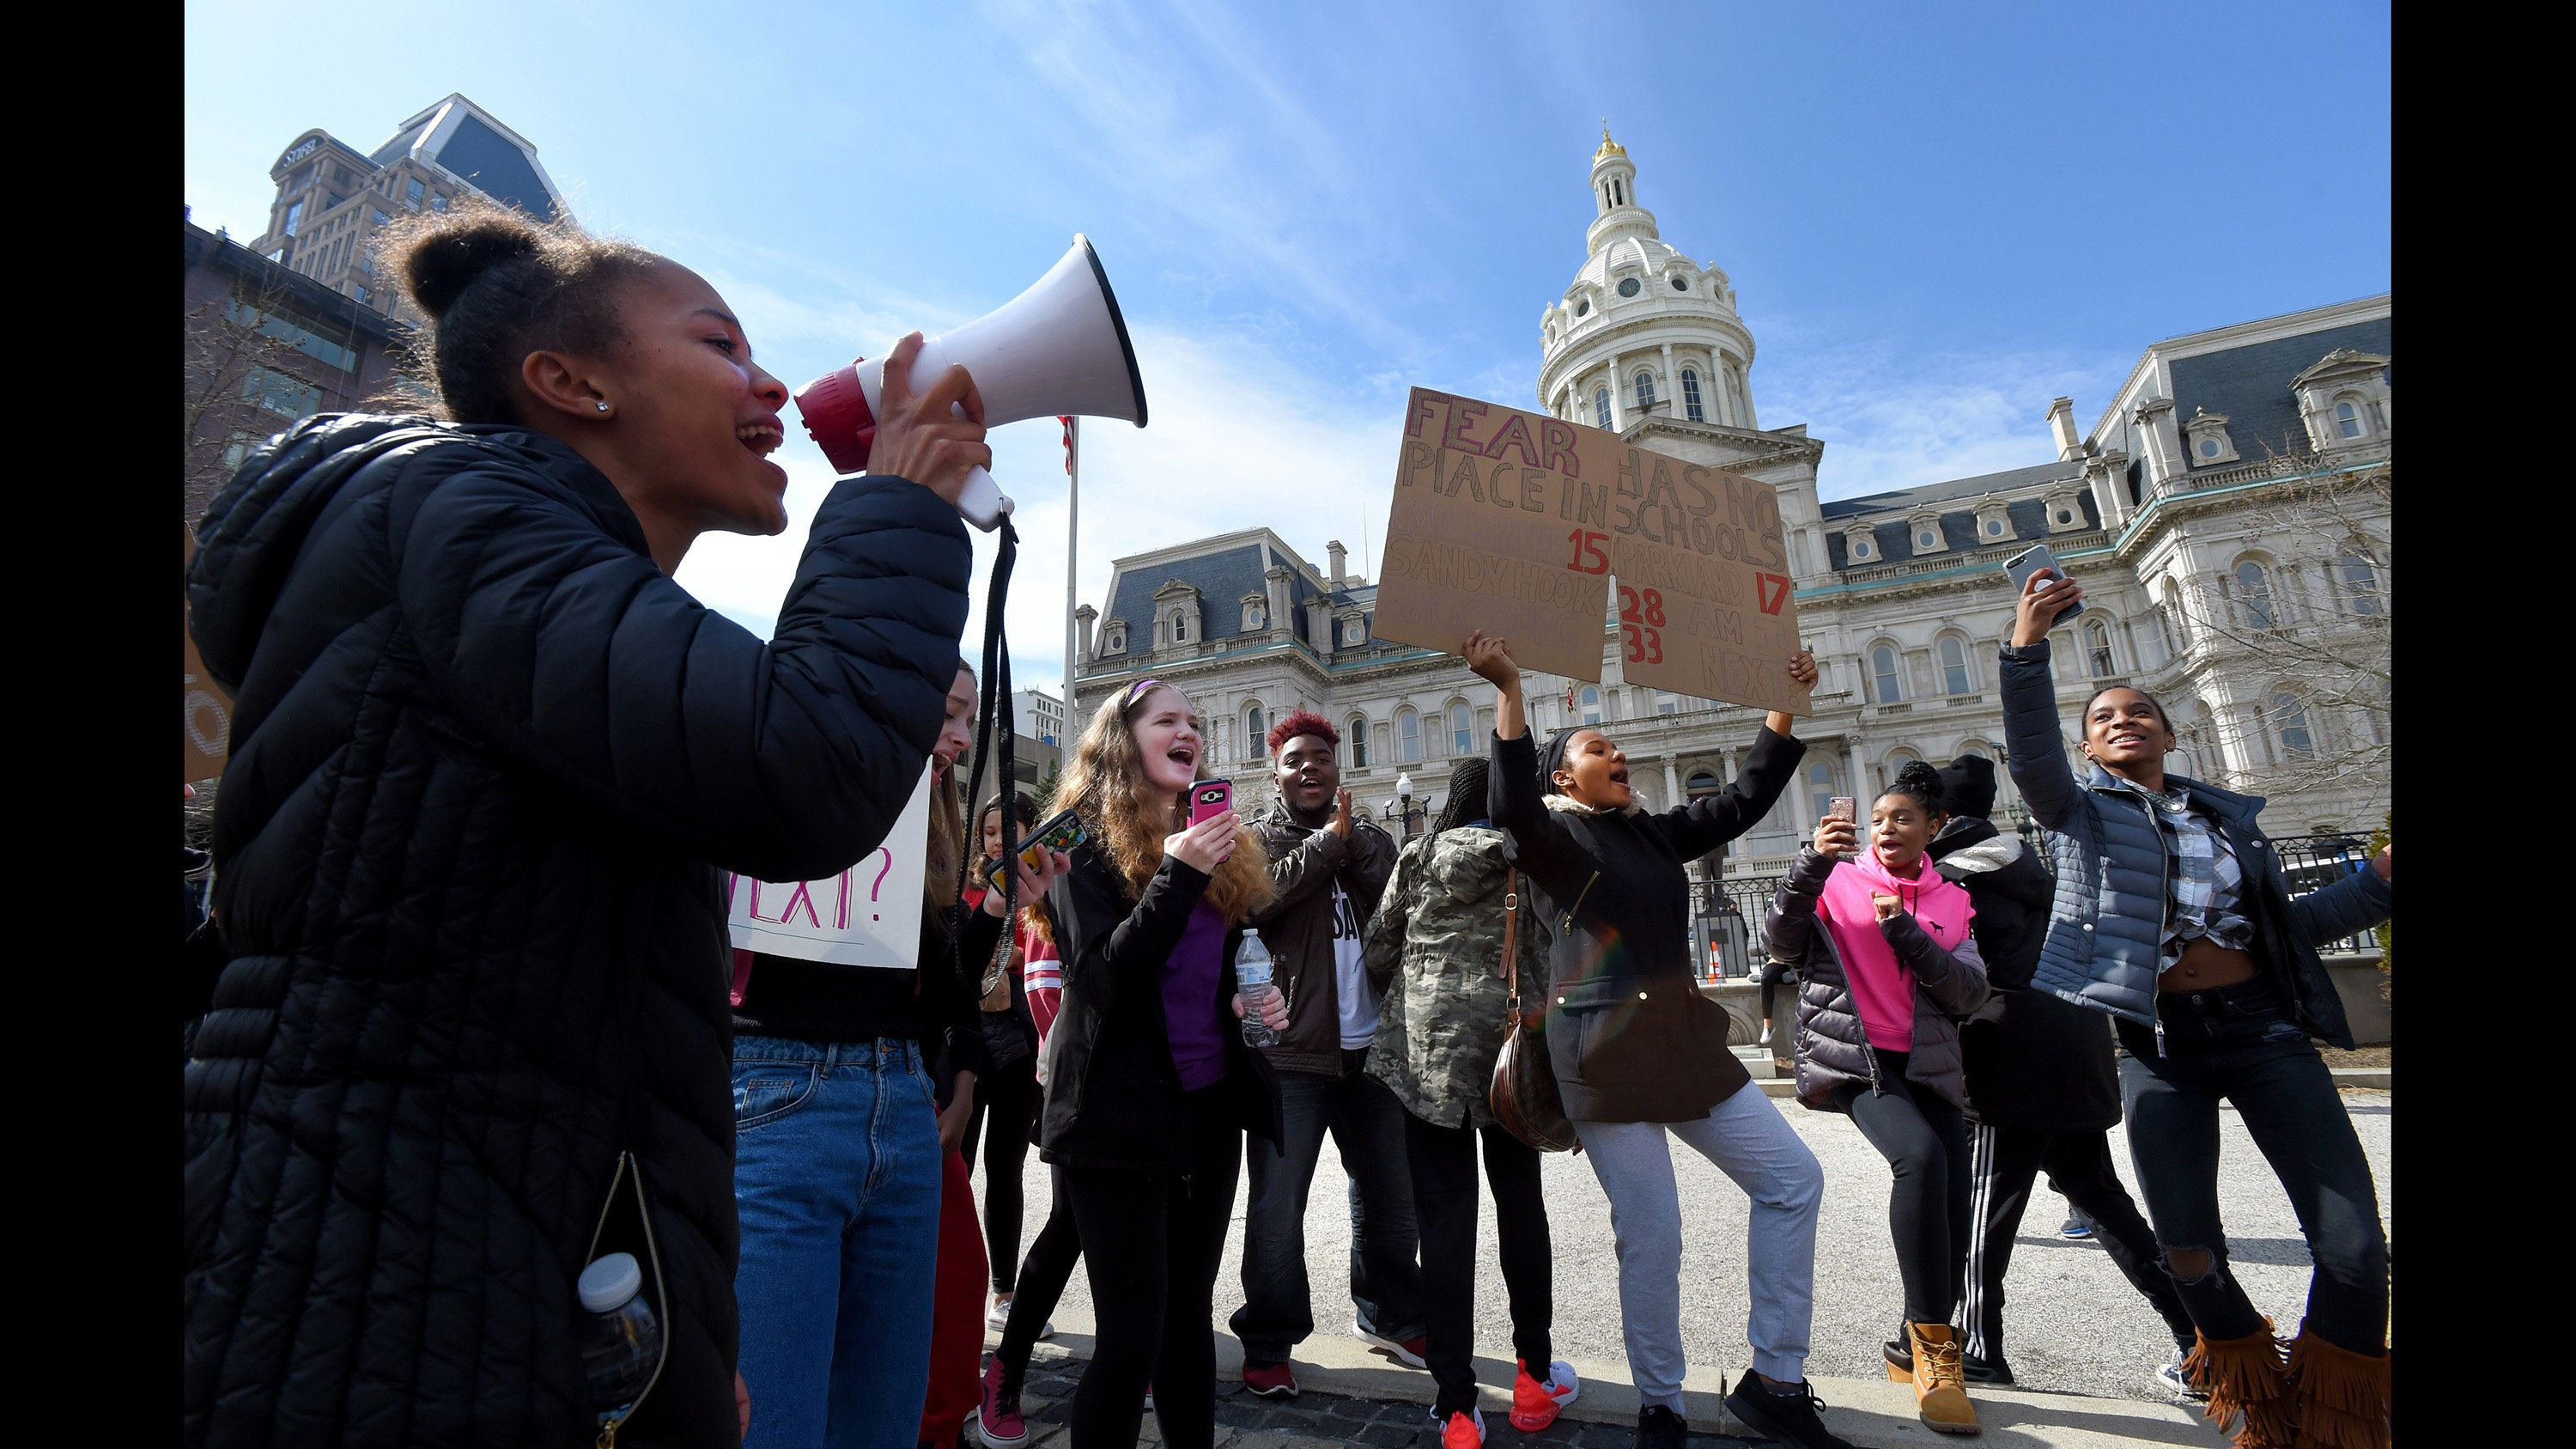 Baltimore students outside City Hall stage a #gunsdowngradesup school walkout on Tuesday, March 6, 2018 to protest gun violence in schools and the city. (Lloyd Fox/Baltimore Sun/TNS via Getty Images)